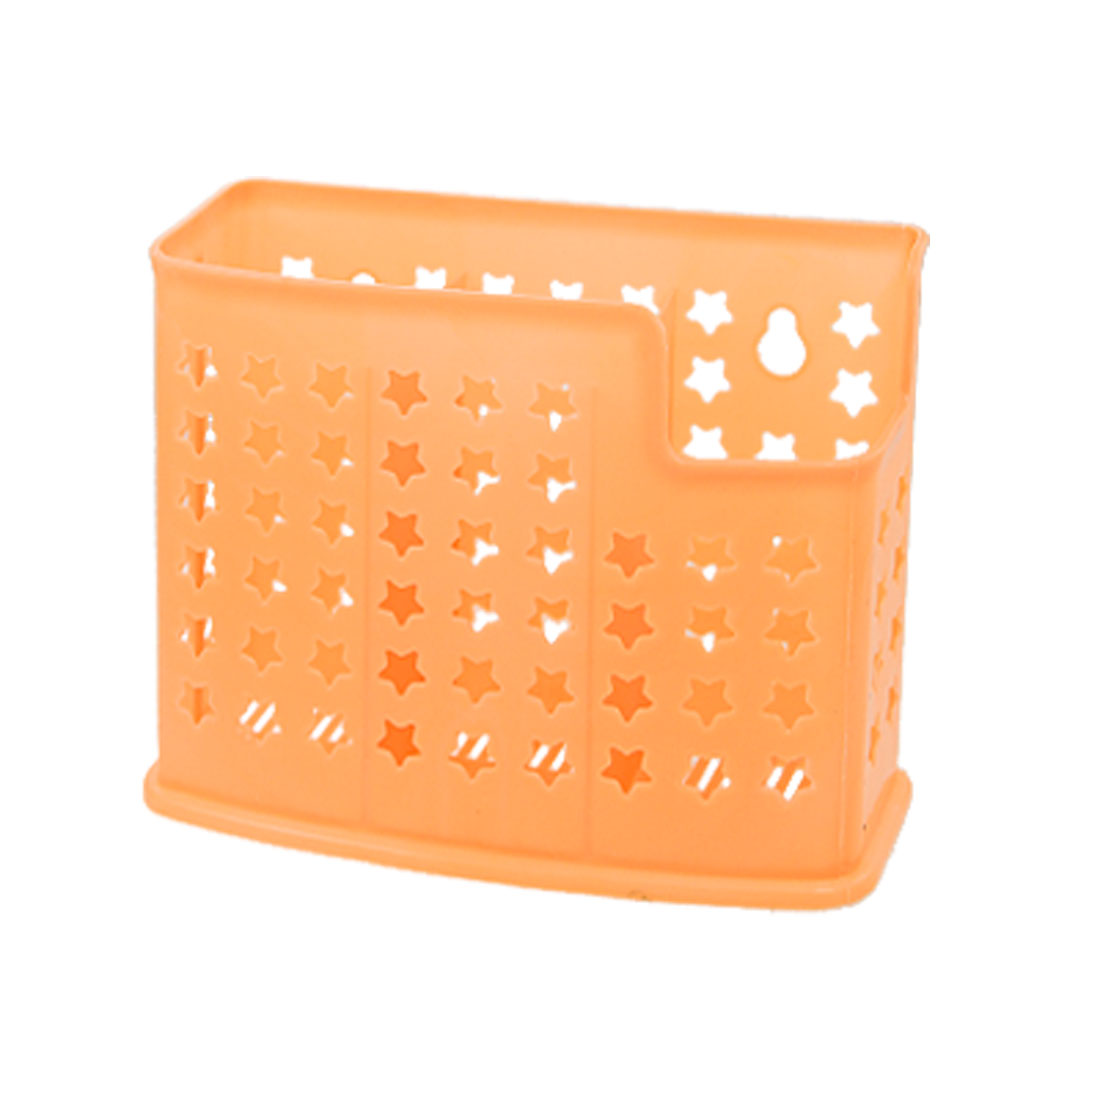 Five Pointed Star Hole 3 Compartments Orange Plastic Chopstick Holder Case